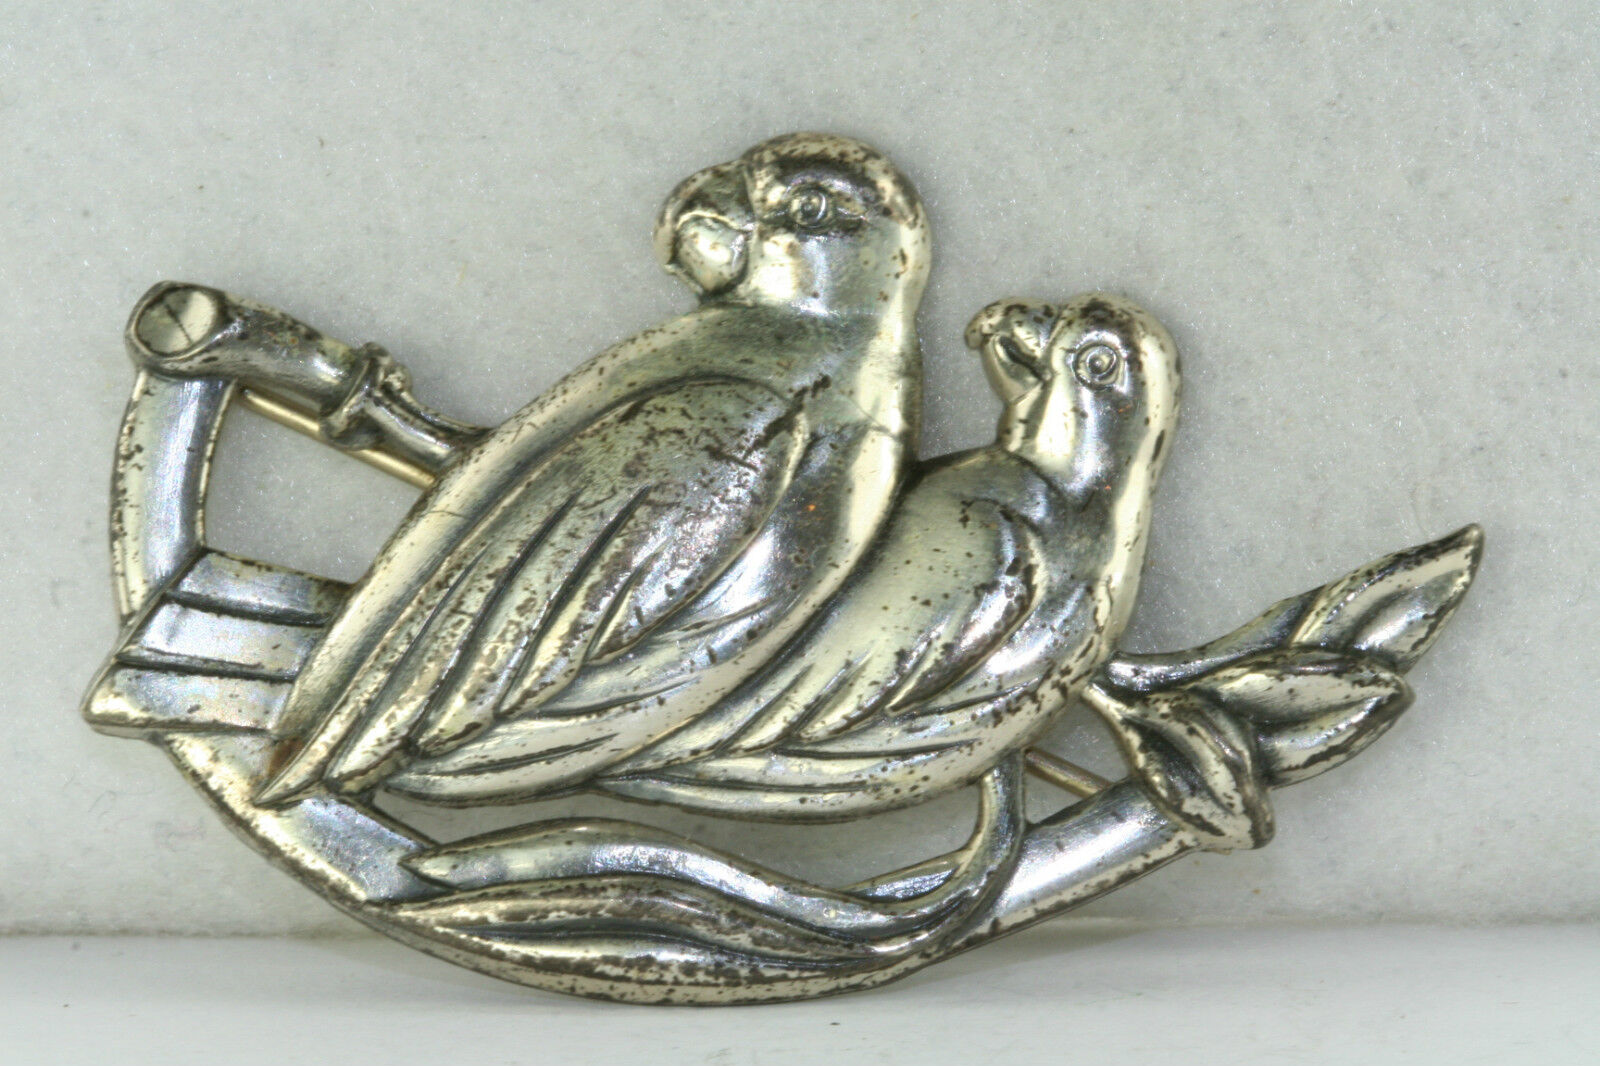 RARE VINTAGE STERLINGCRAFT BY Cgold PIN PARred BIRD PIN